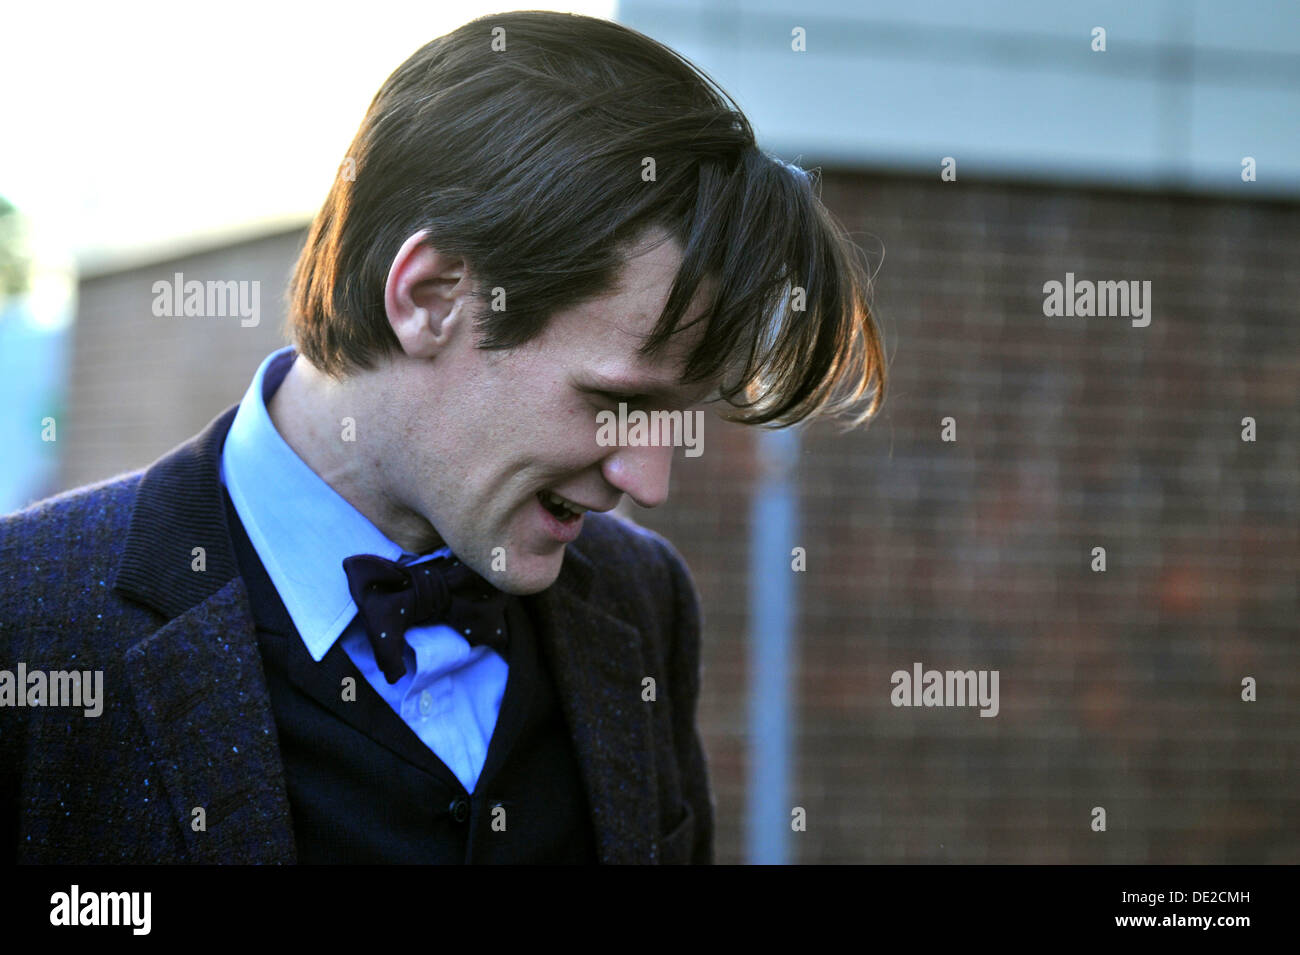 CARDIFF, UK. 10th September 2013. Doctor Who filming the Christmas Special episode on location in Lydstep Park, Gabalfa, Cardiff. Photo shows Matt Smith, who plays the Eleventh Doctor, leaving the set at the end of the day's filming. Credit:  Polly Thomas / Alamy Live News - Stock Image